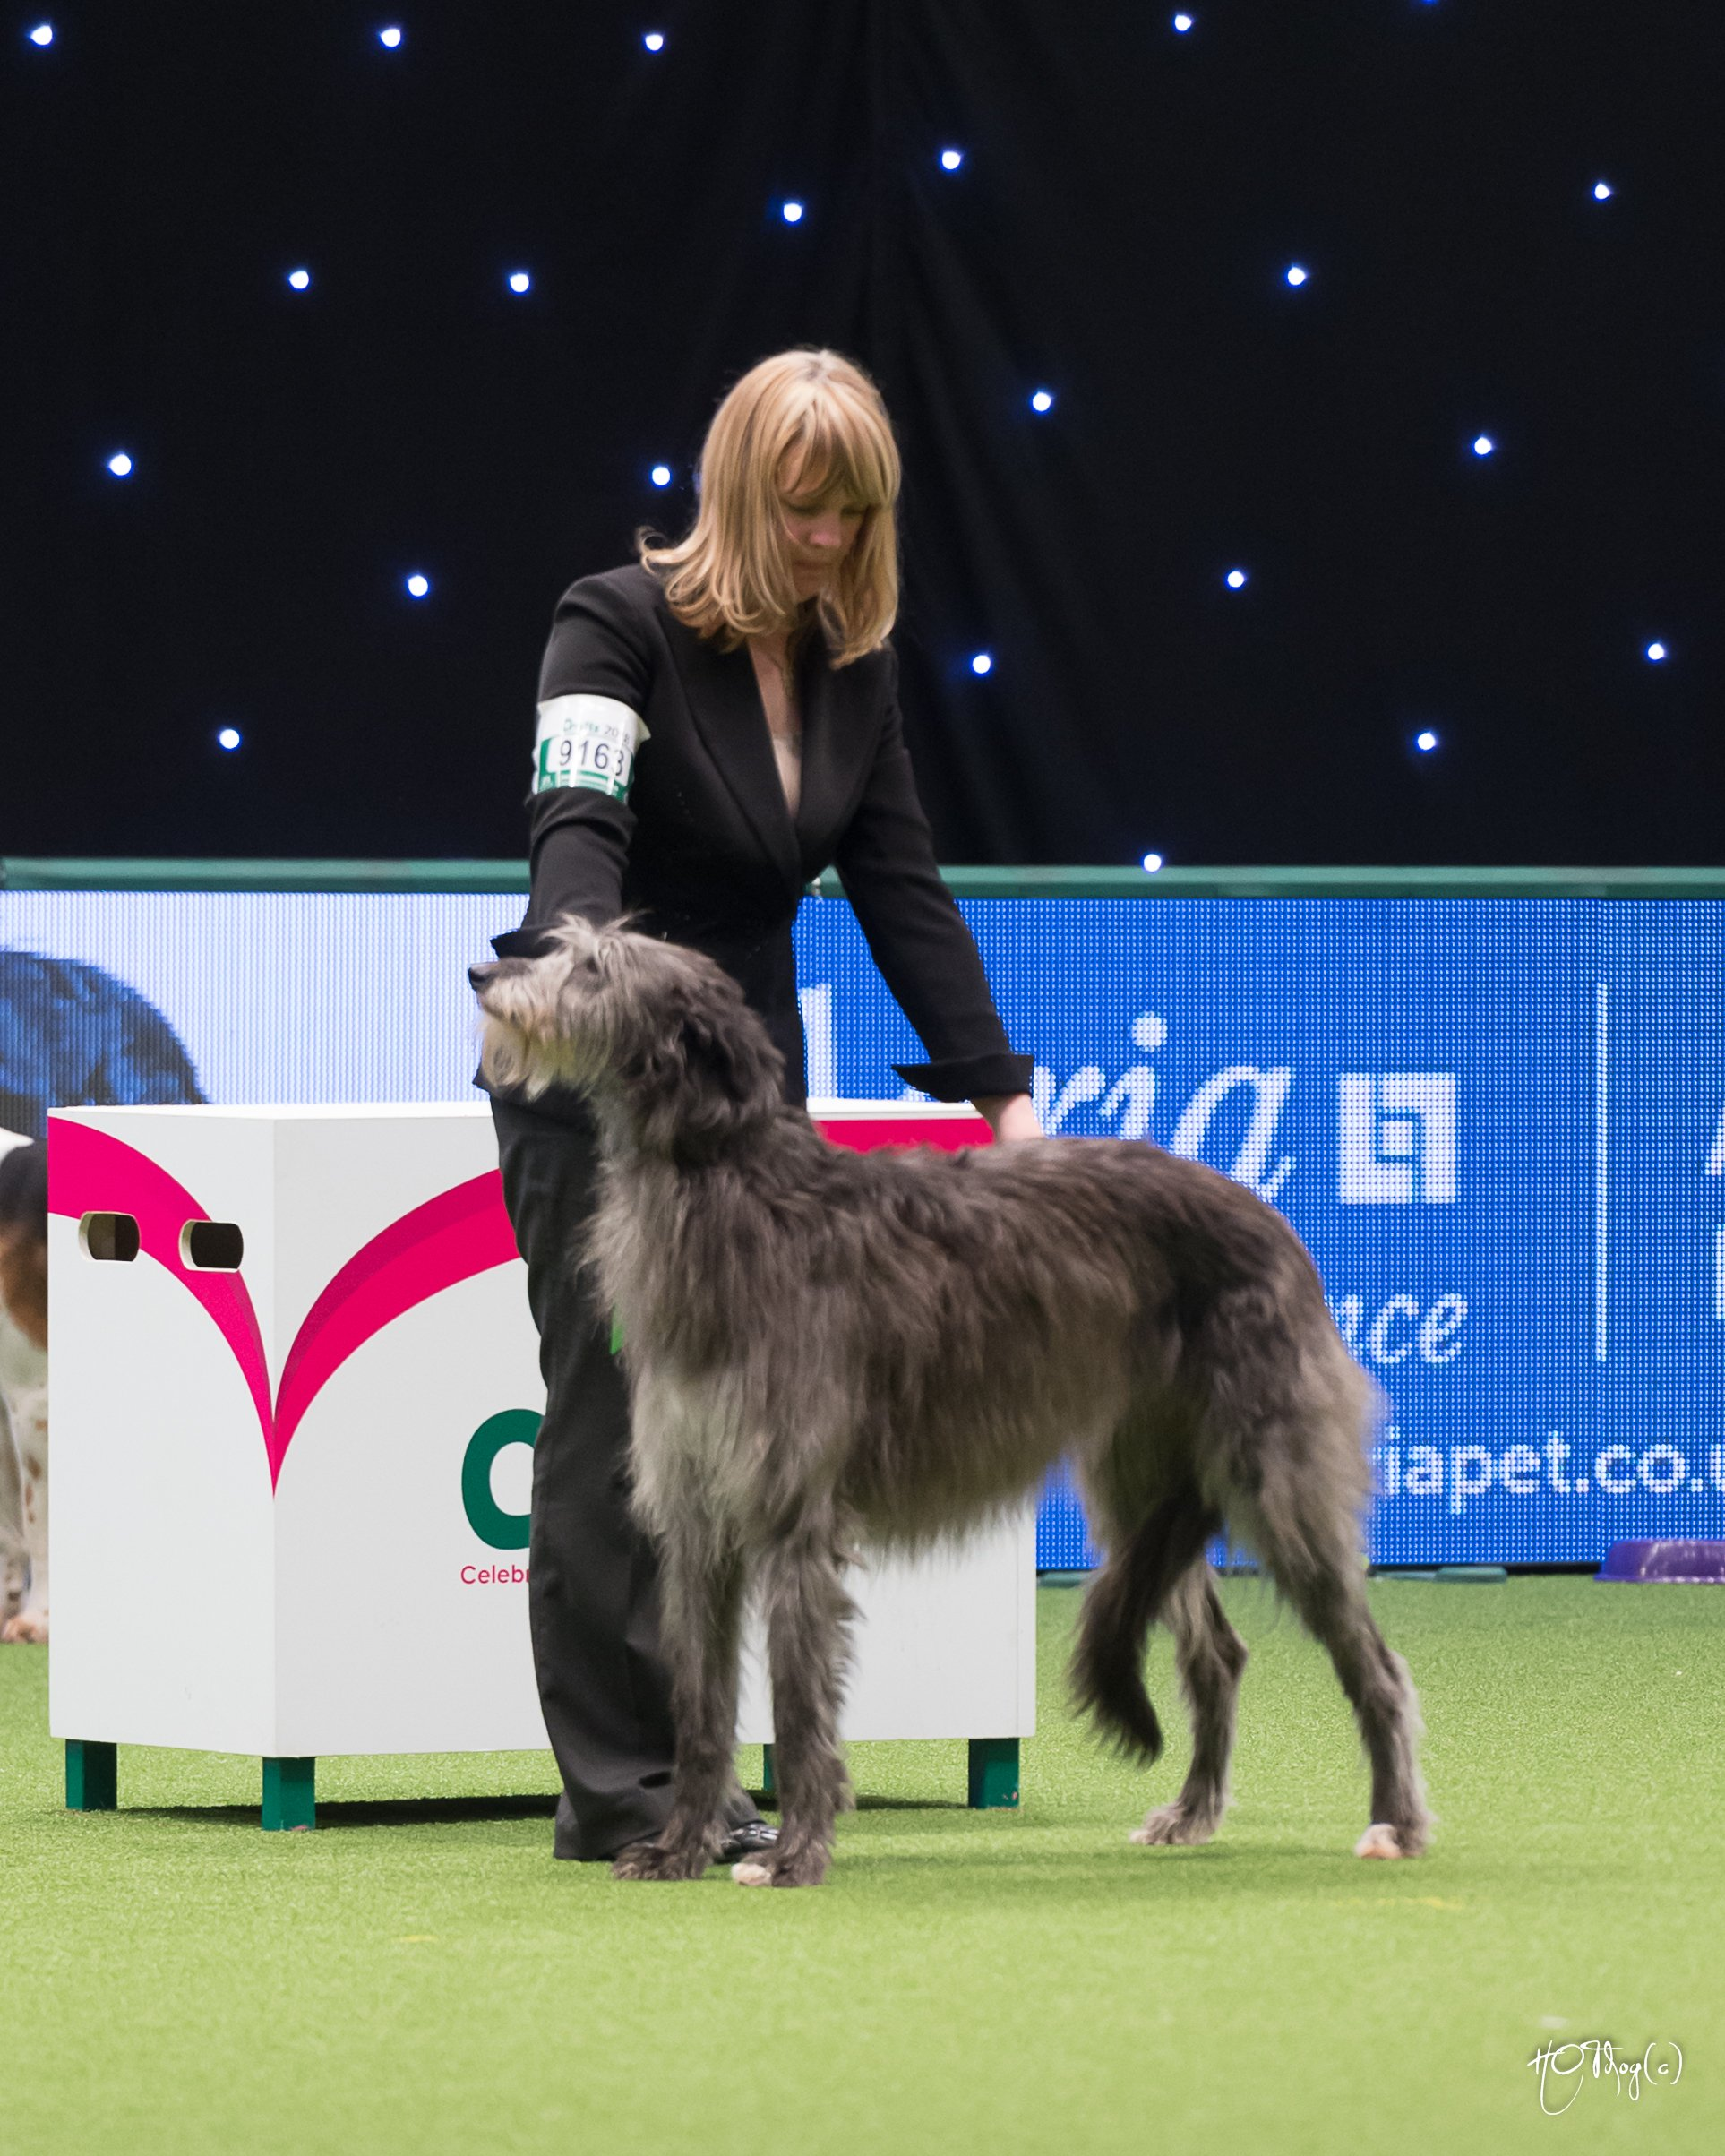 Thanks to Oleg Bochkov for the photo of Gobi competing in the hound group